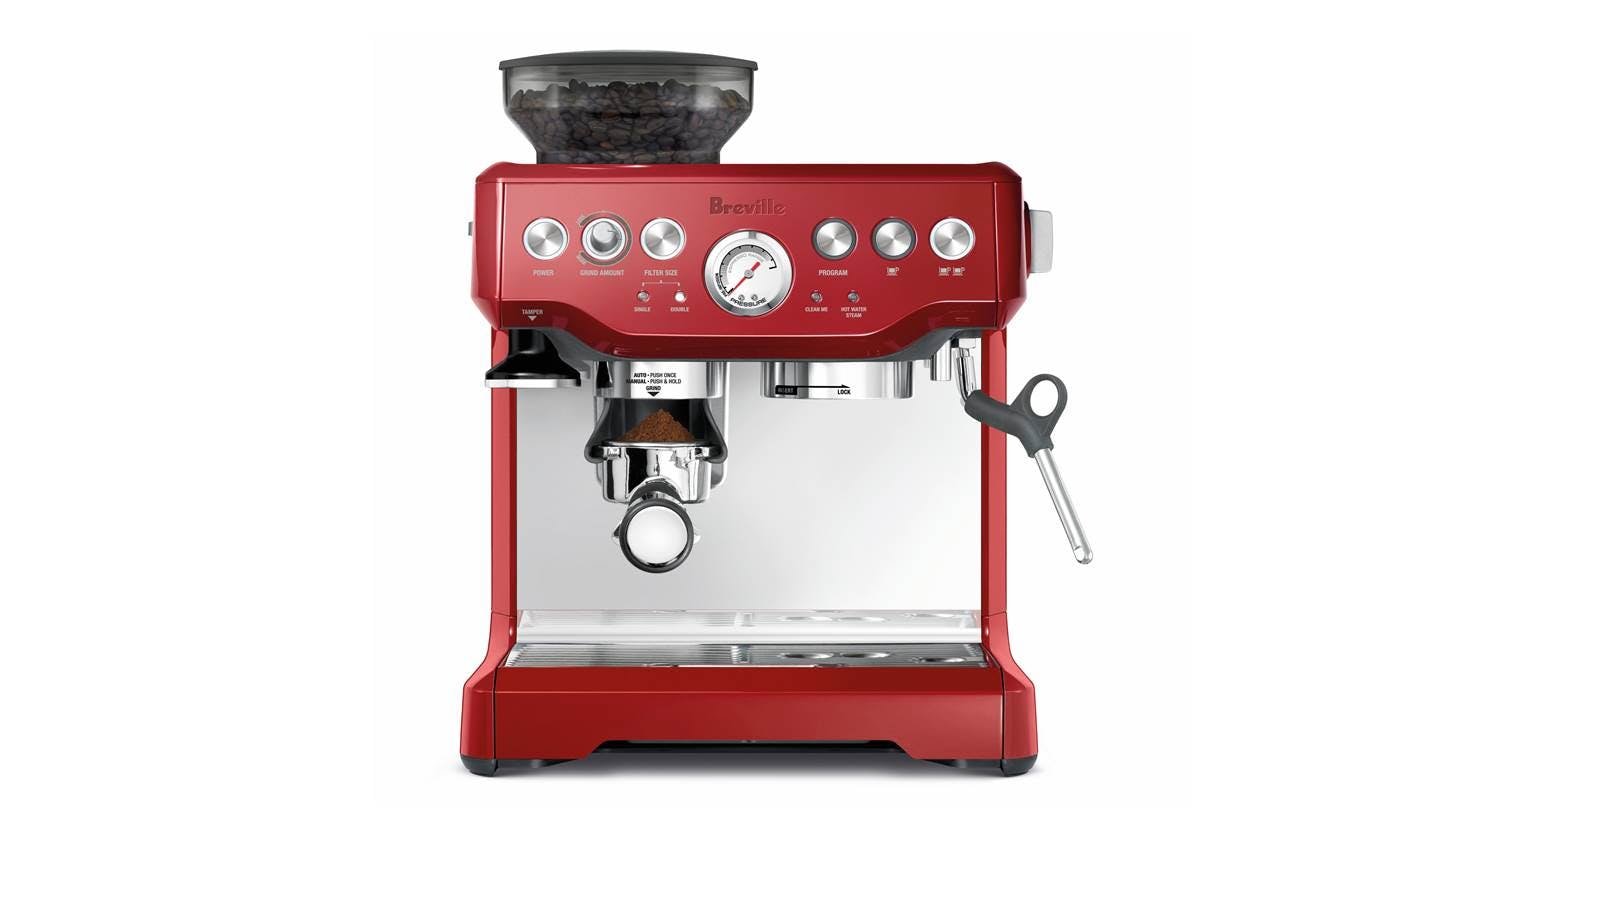 Breville The Barista Express Coffee Machine Bes870 Cranberry Red